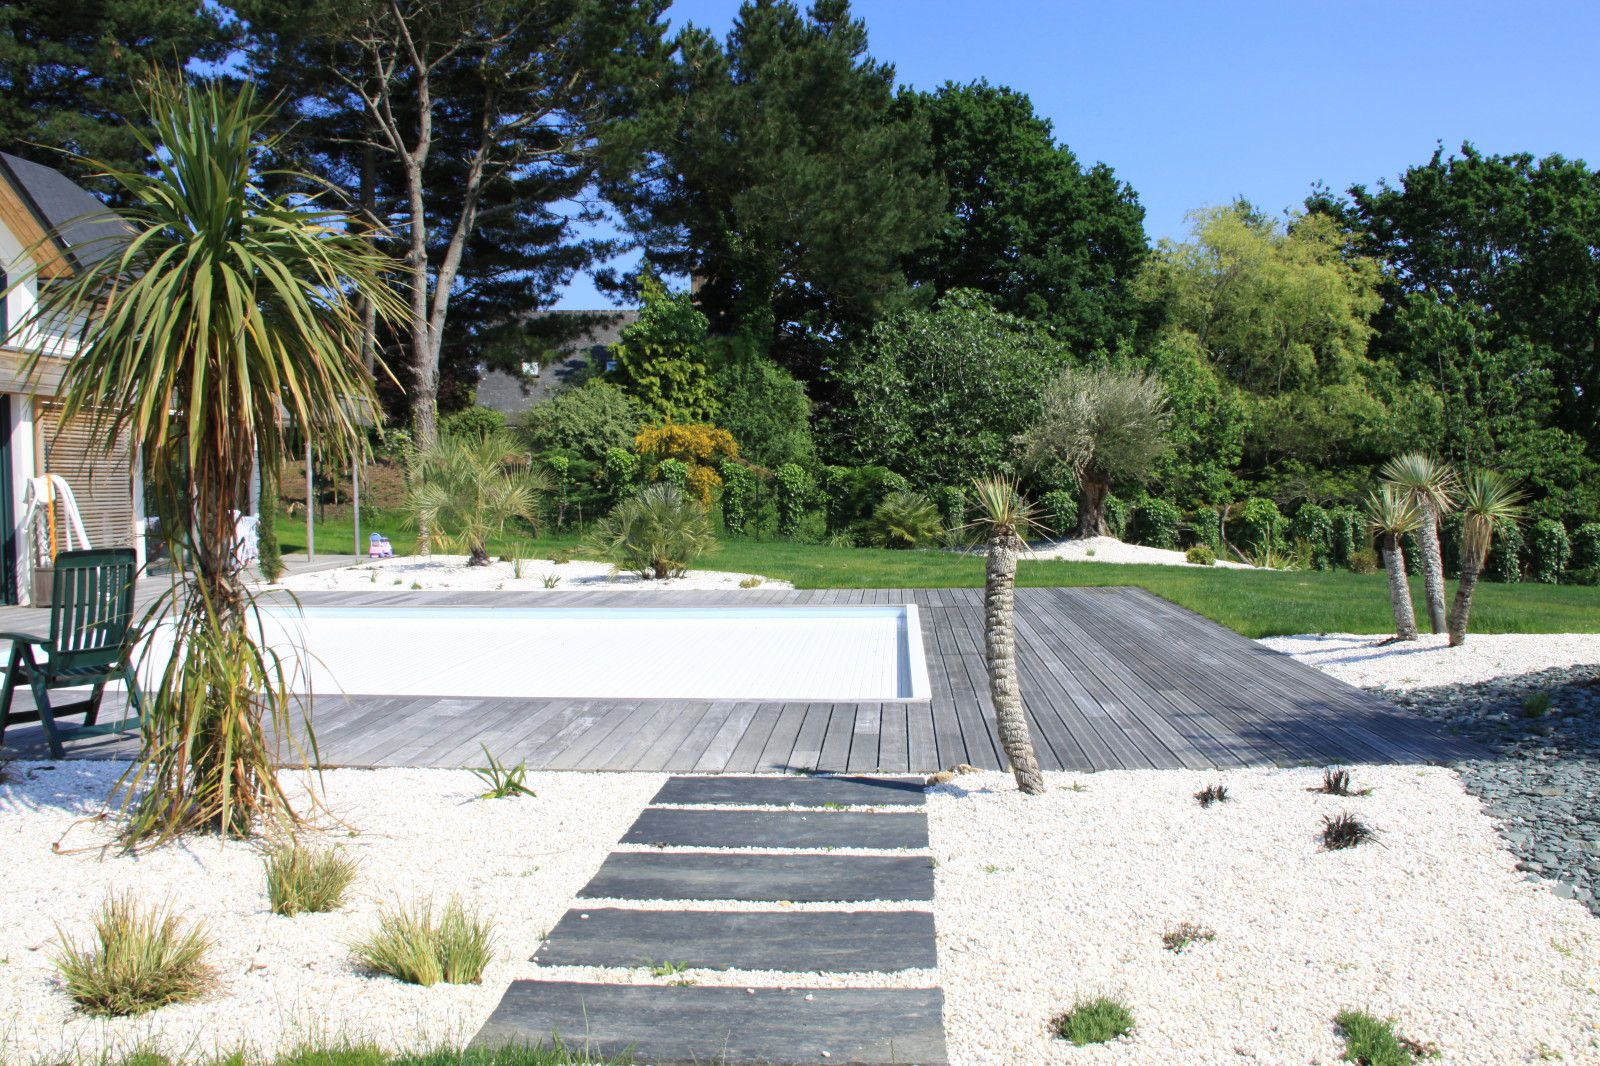 Garten moy arbor mineral paysagiste a vannes amenage for Paysagiste piscine